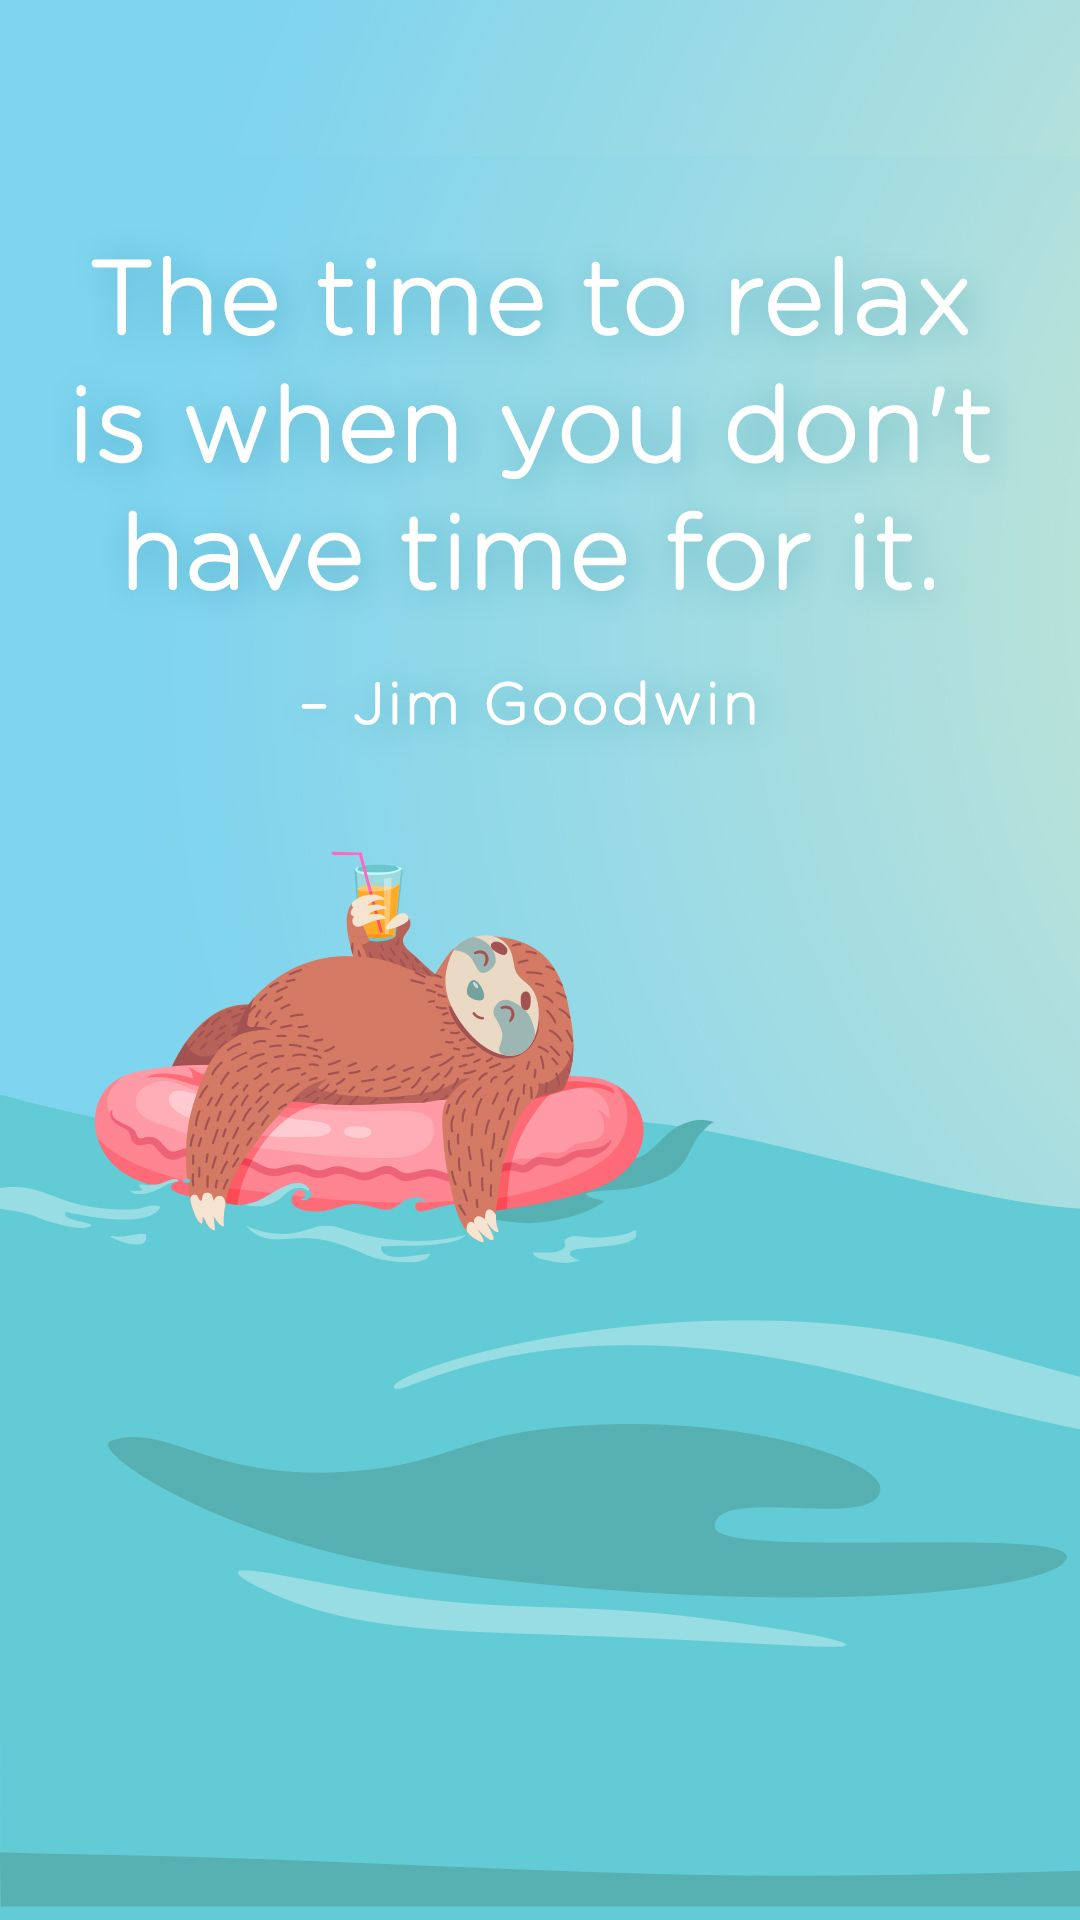 The Time To Relax Is When You Don T Have Time For It Jim Goodwin Quotes Sayings Relaxation Holiday Quotes Summer Holiday Quotes Relax Time